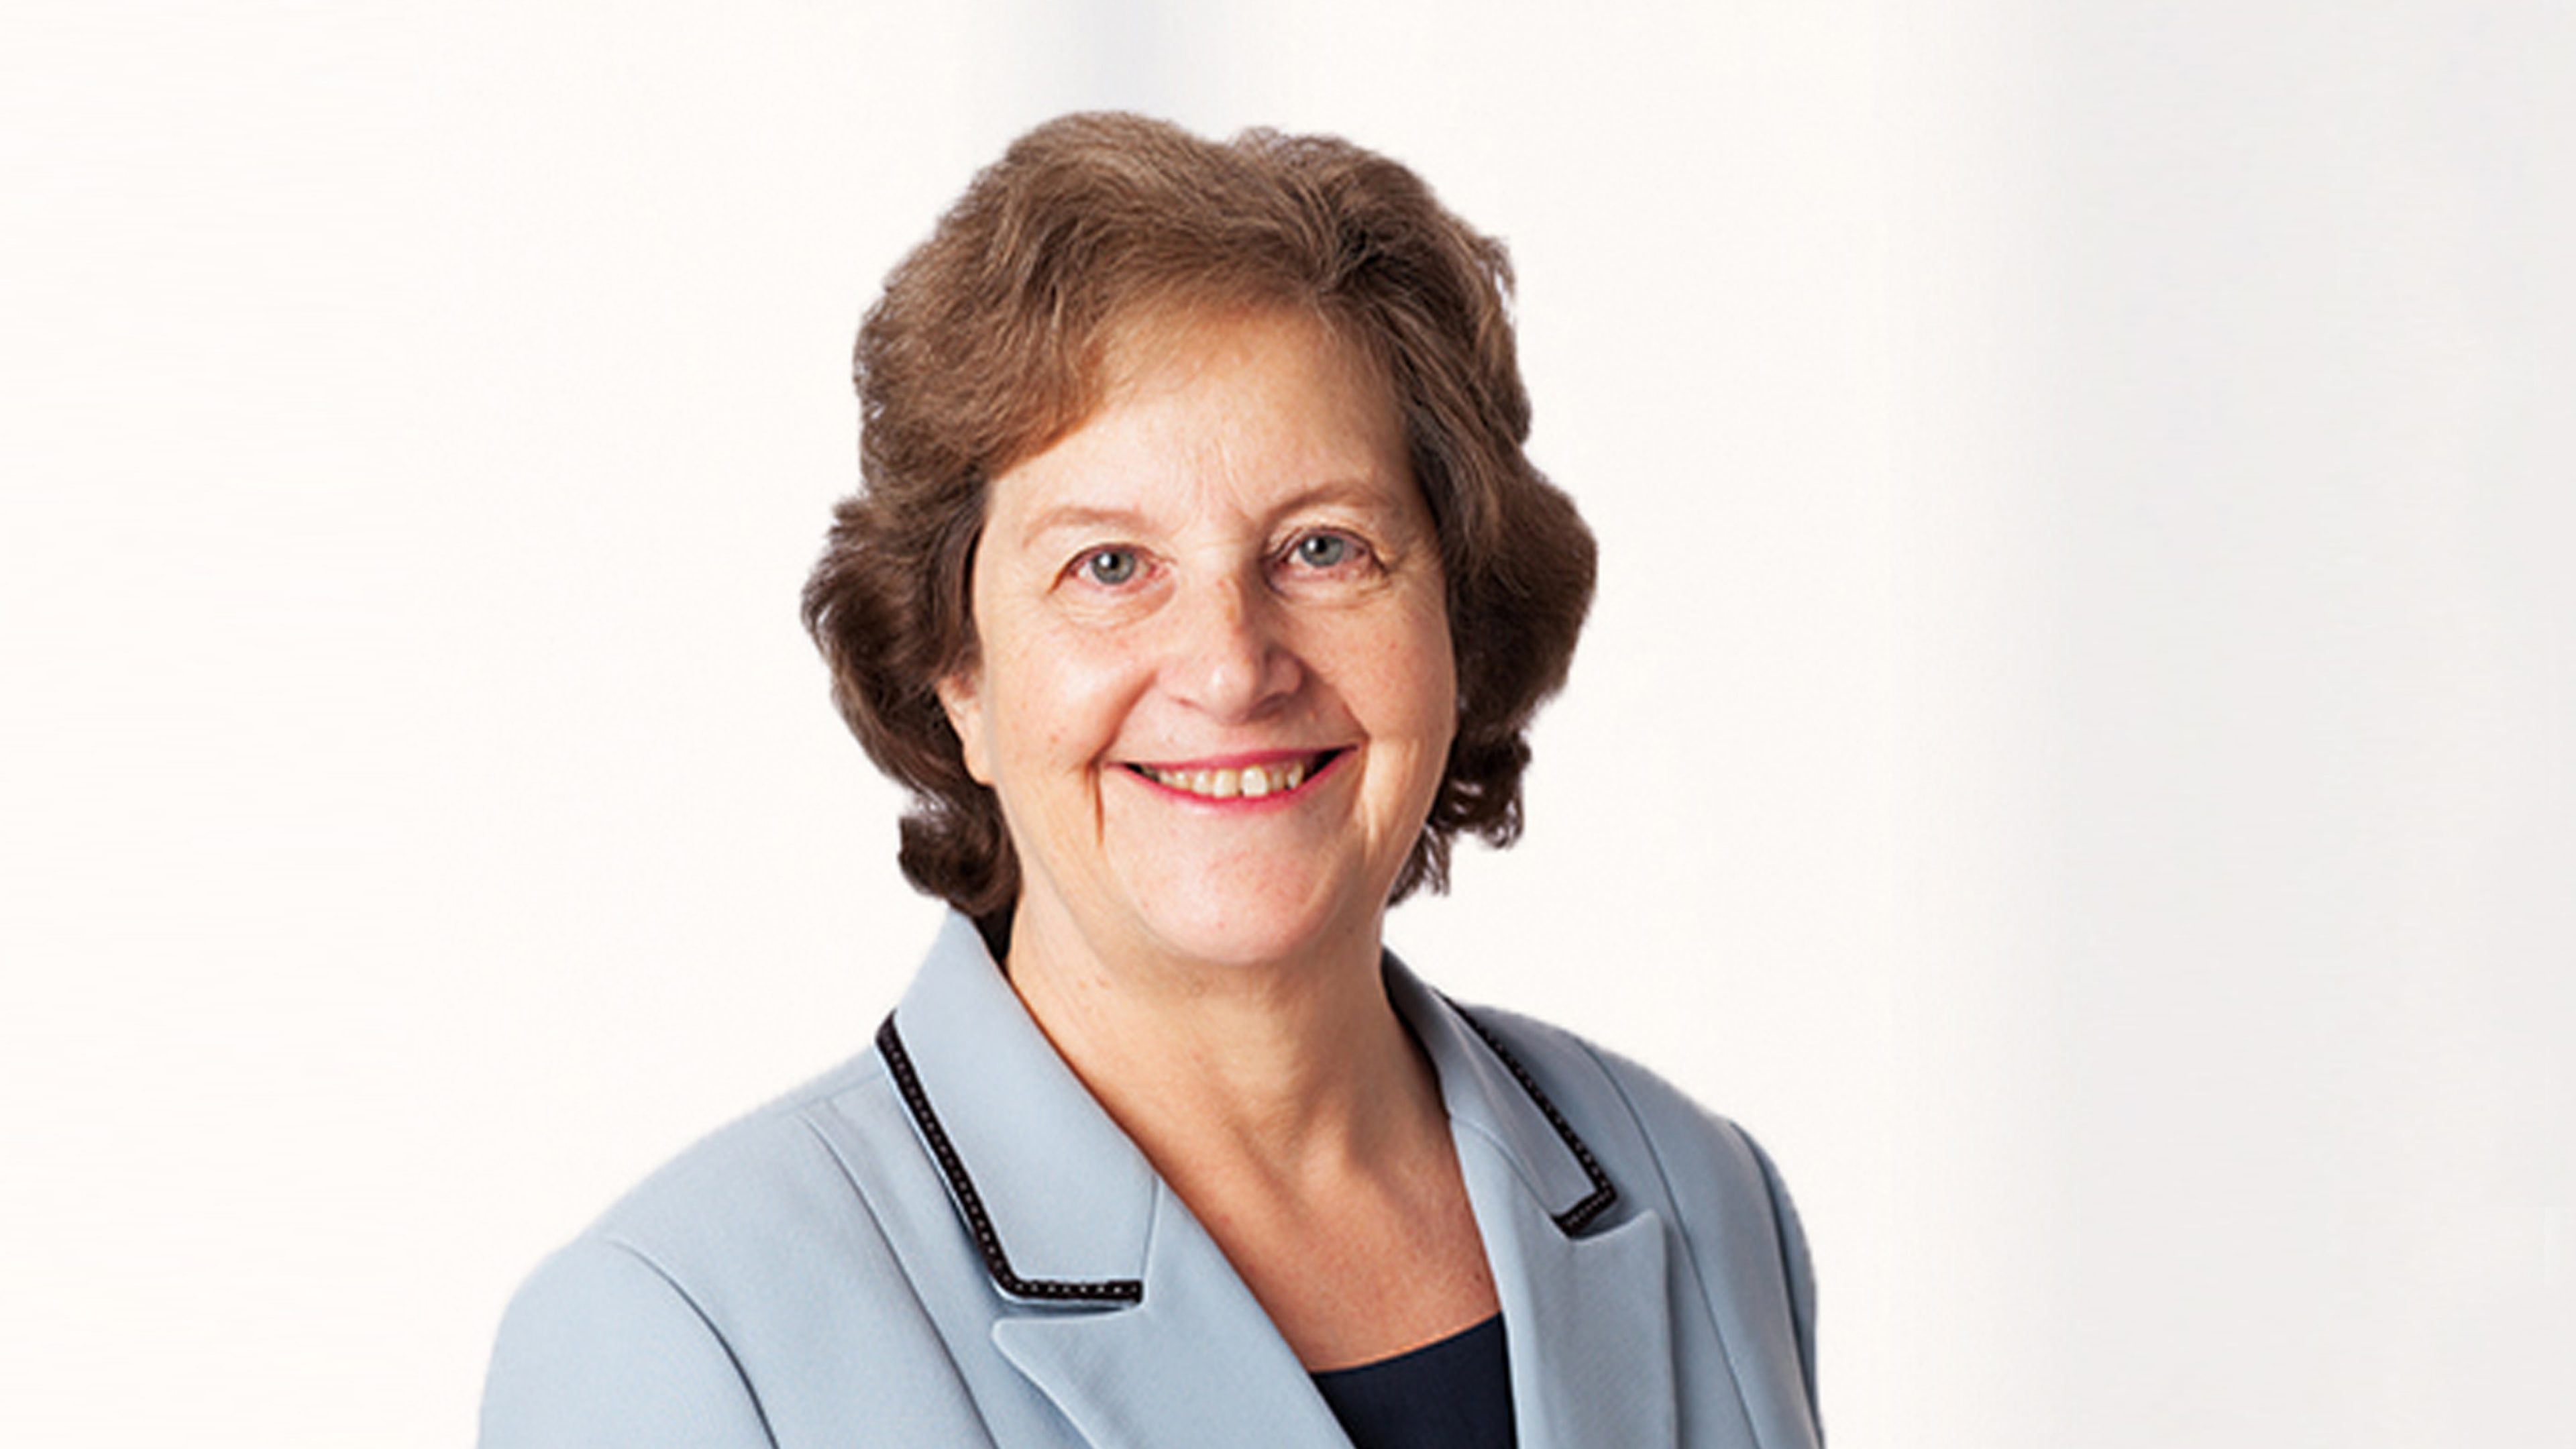 Professor Dame Ann Dowling - Independent non-executive director